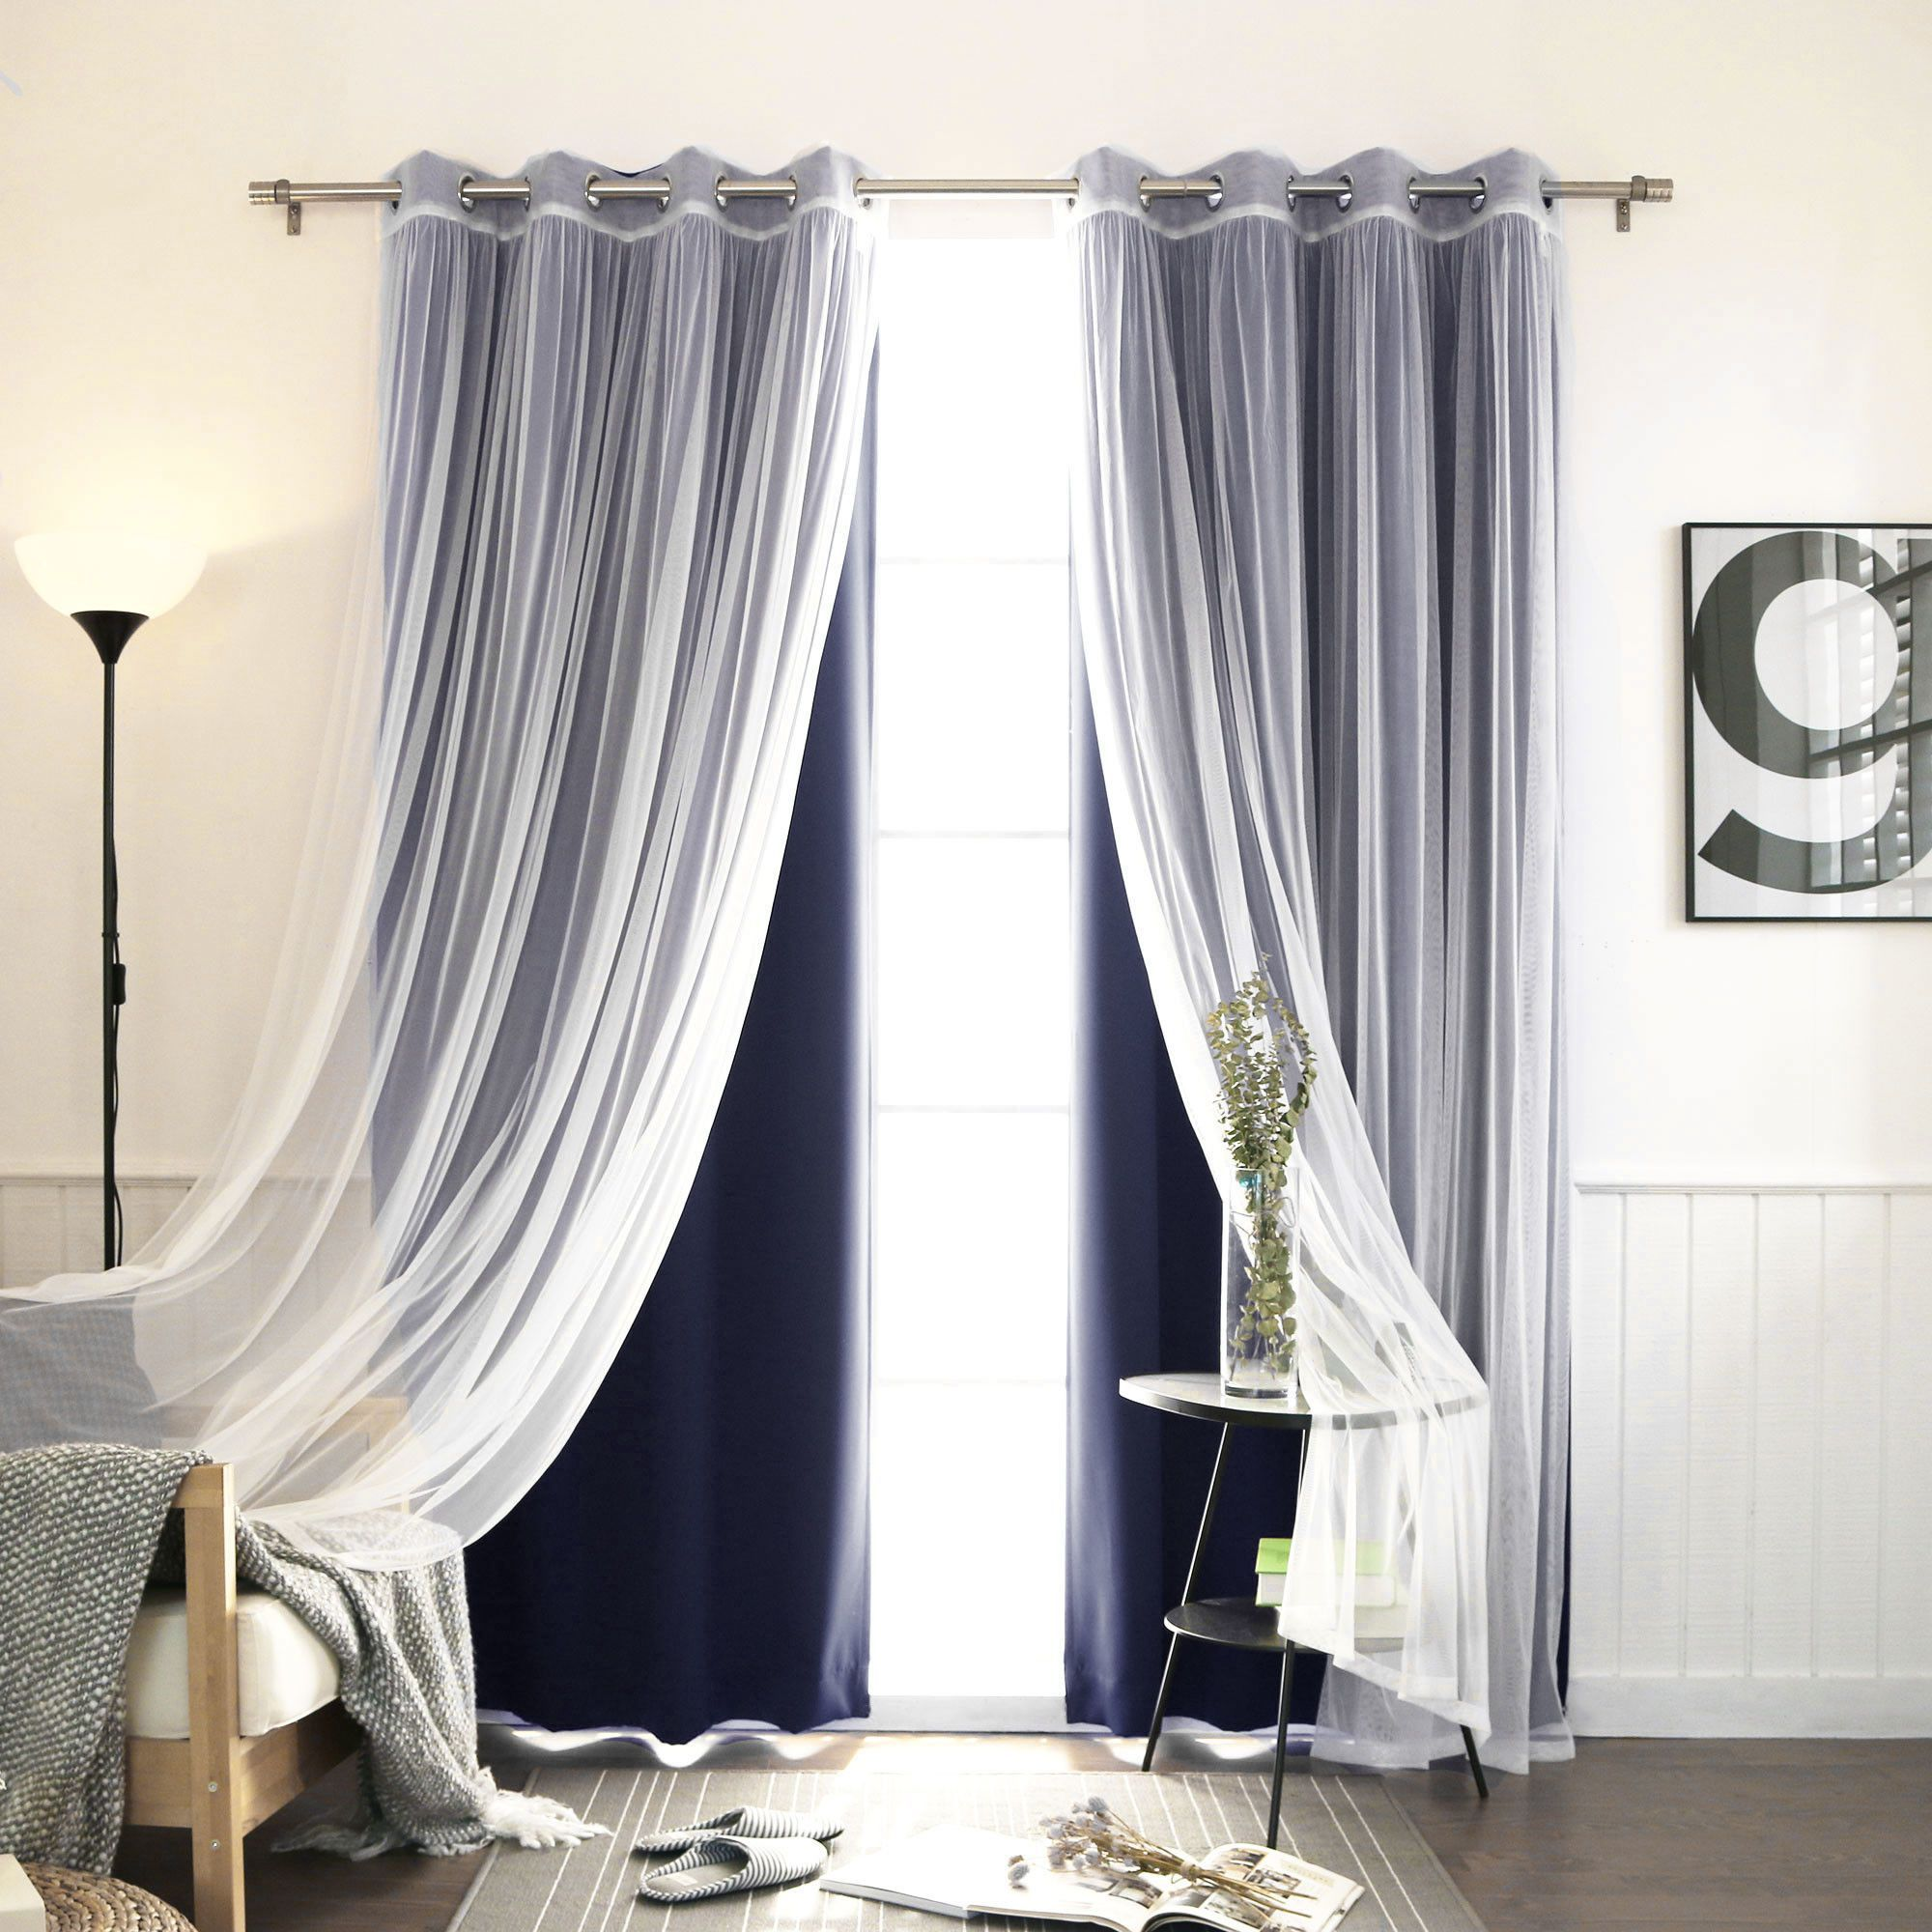 Features Set Includes 2 Blackout Curtain Panels And White Sheer Curtains Block Out 100 UV Rays Up To 99 Of Light